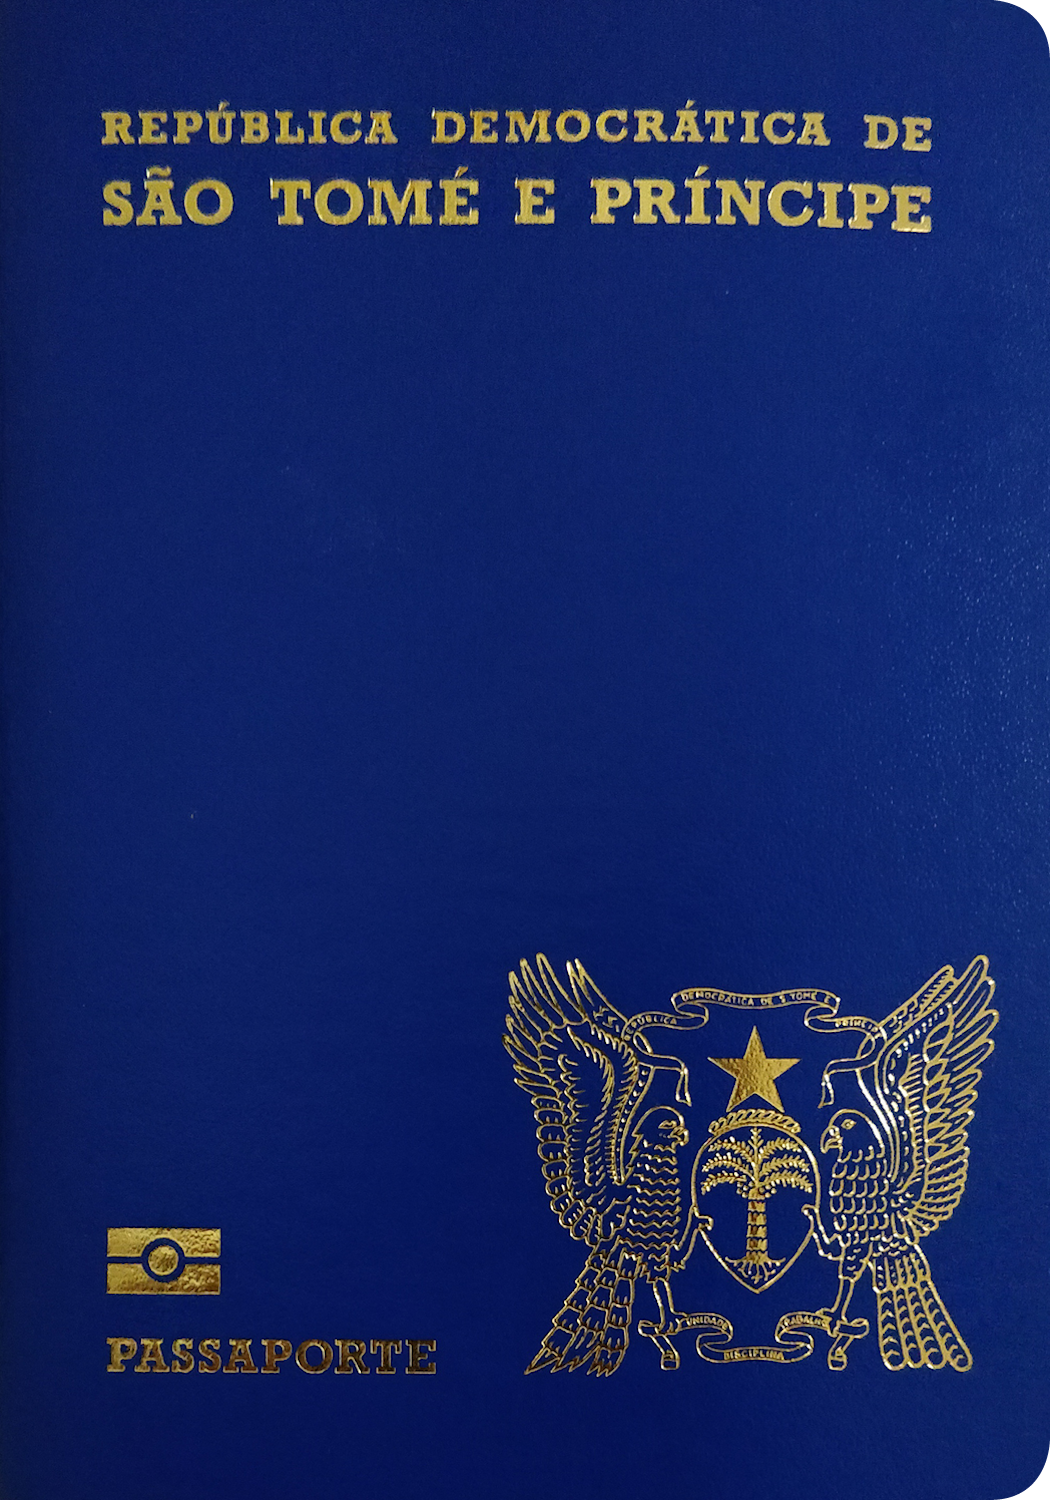 A regular or ordinary sao tome and principe passport - Front side